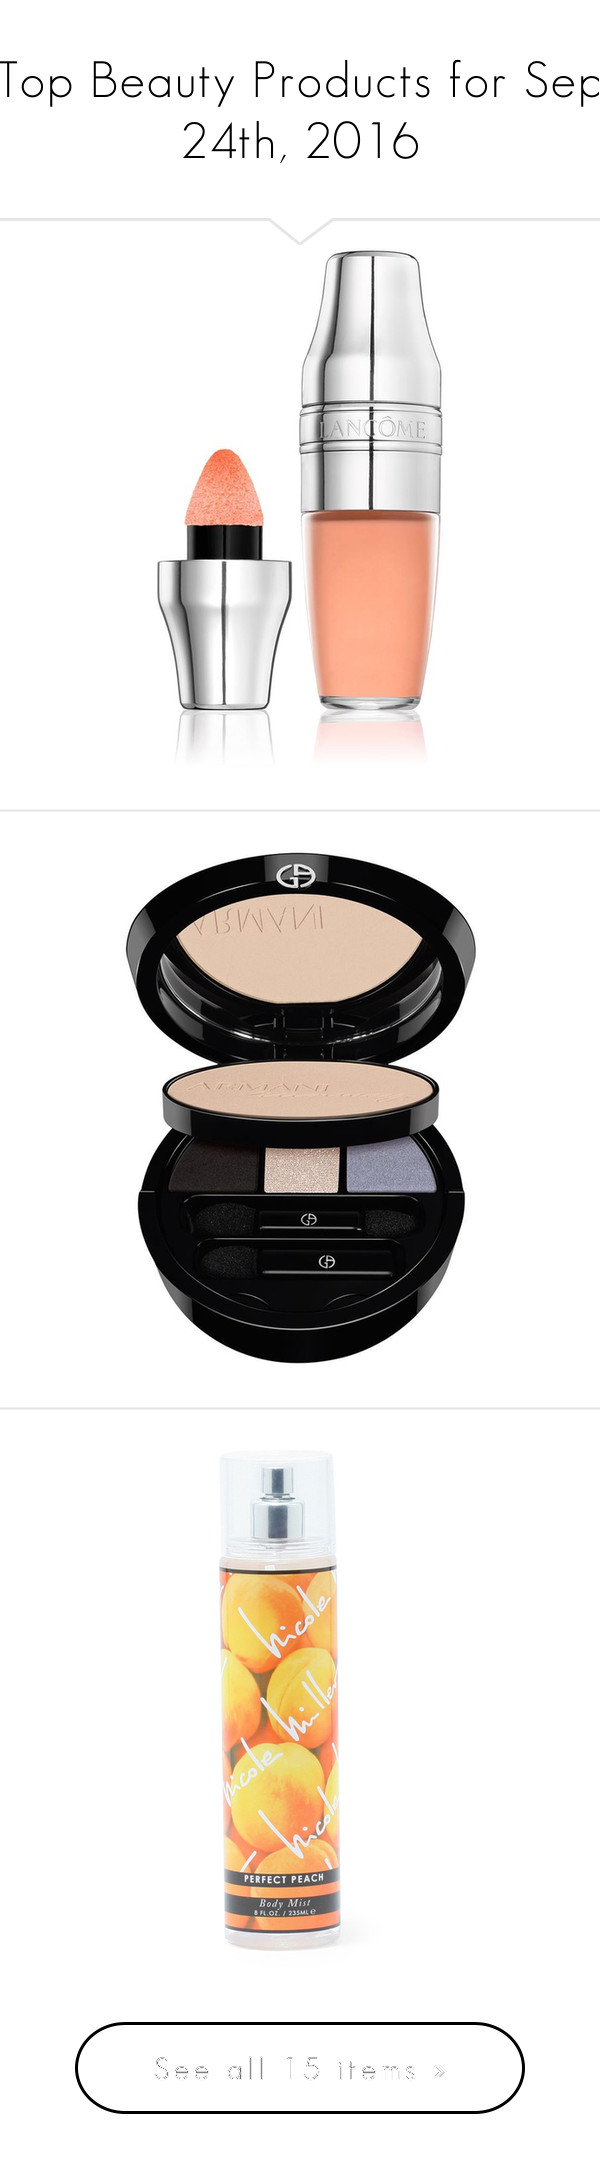 """""""Top Beauty Products for Sep 24th, 2016"""" by polyvore ❤ liked on Polyvore featuring beauty products, makeup, lip makeup, lip gloss, lancome lipgloss, lancôme, lip gloss makeup, lancome lip gloss, face makeup and giorgio armani cosmetics"""